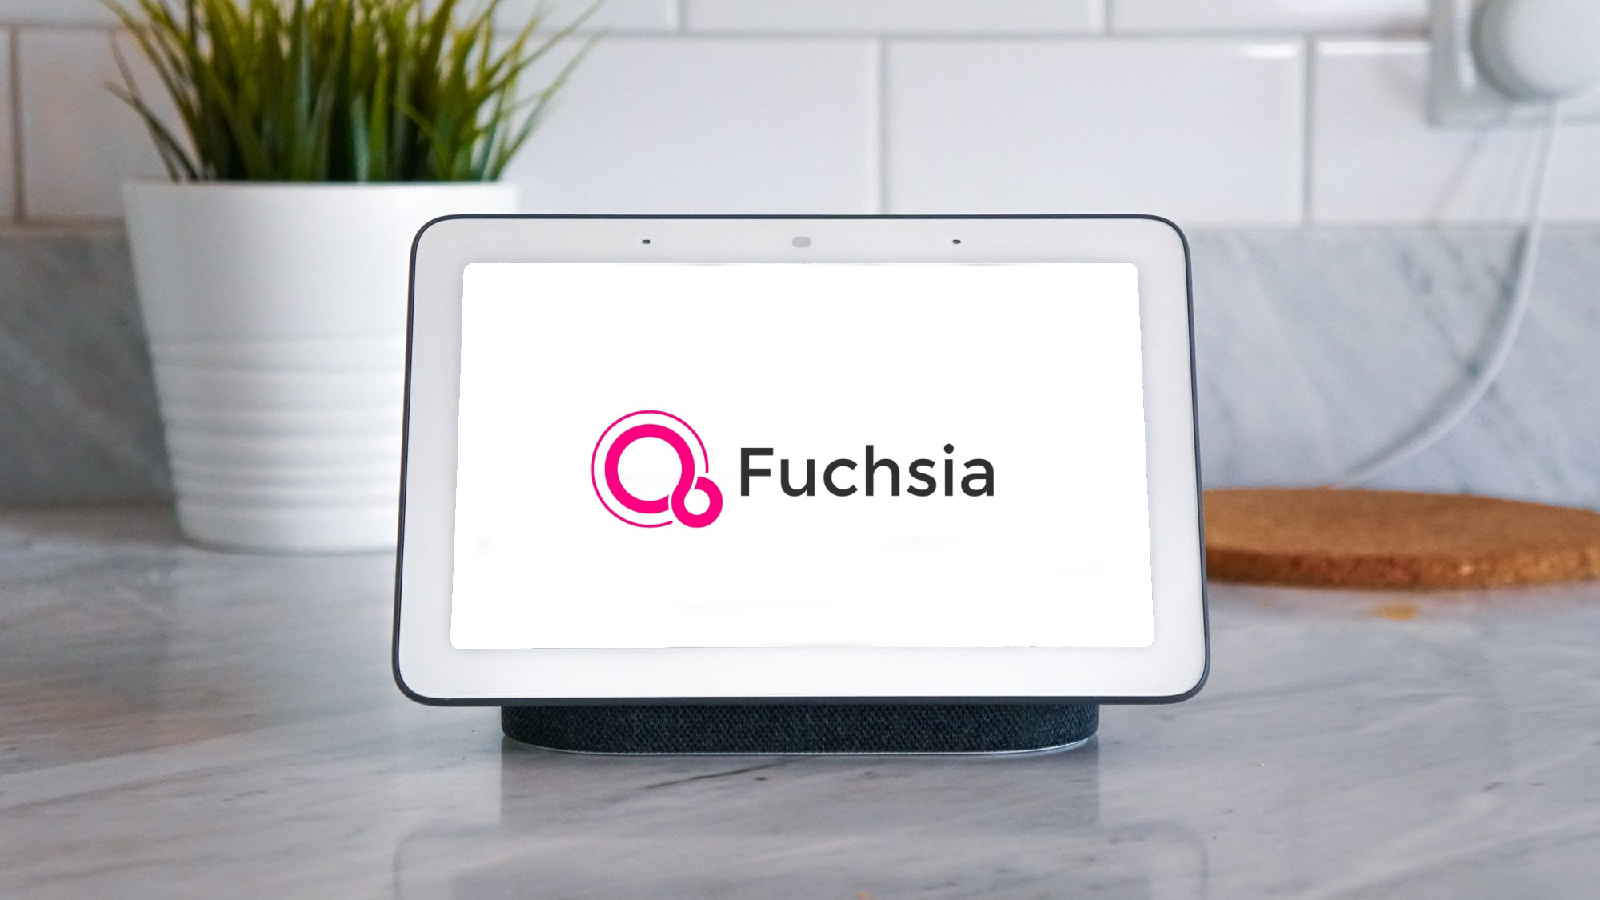 Fuchsia spotted running on Google Home Hub via Bluetooth qualification listing